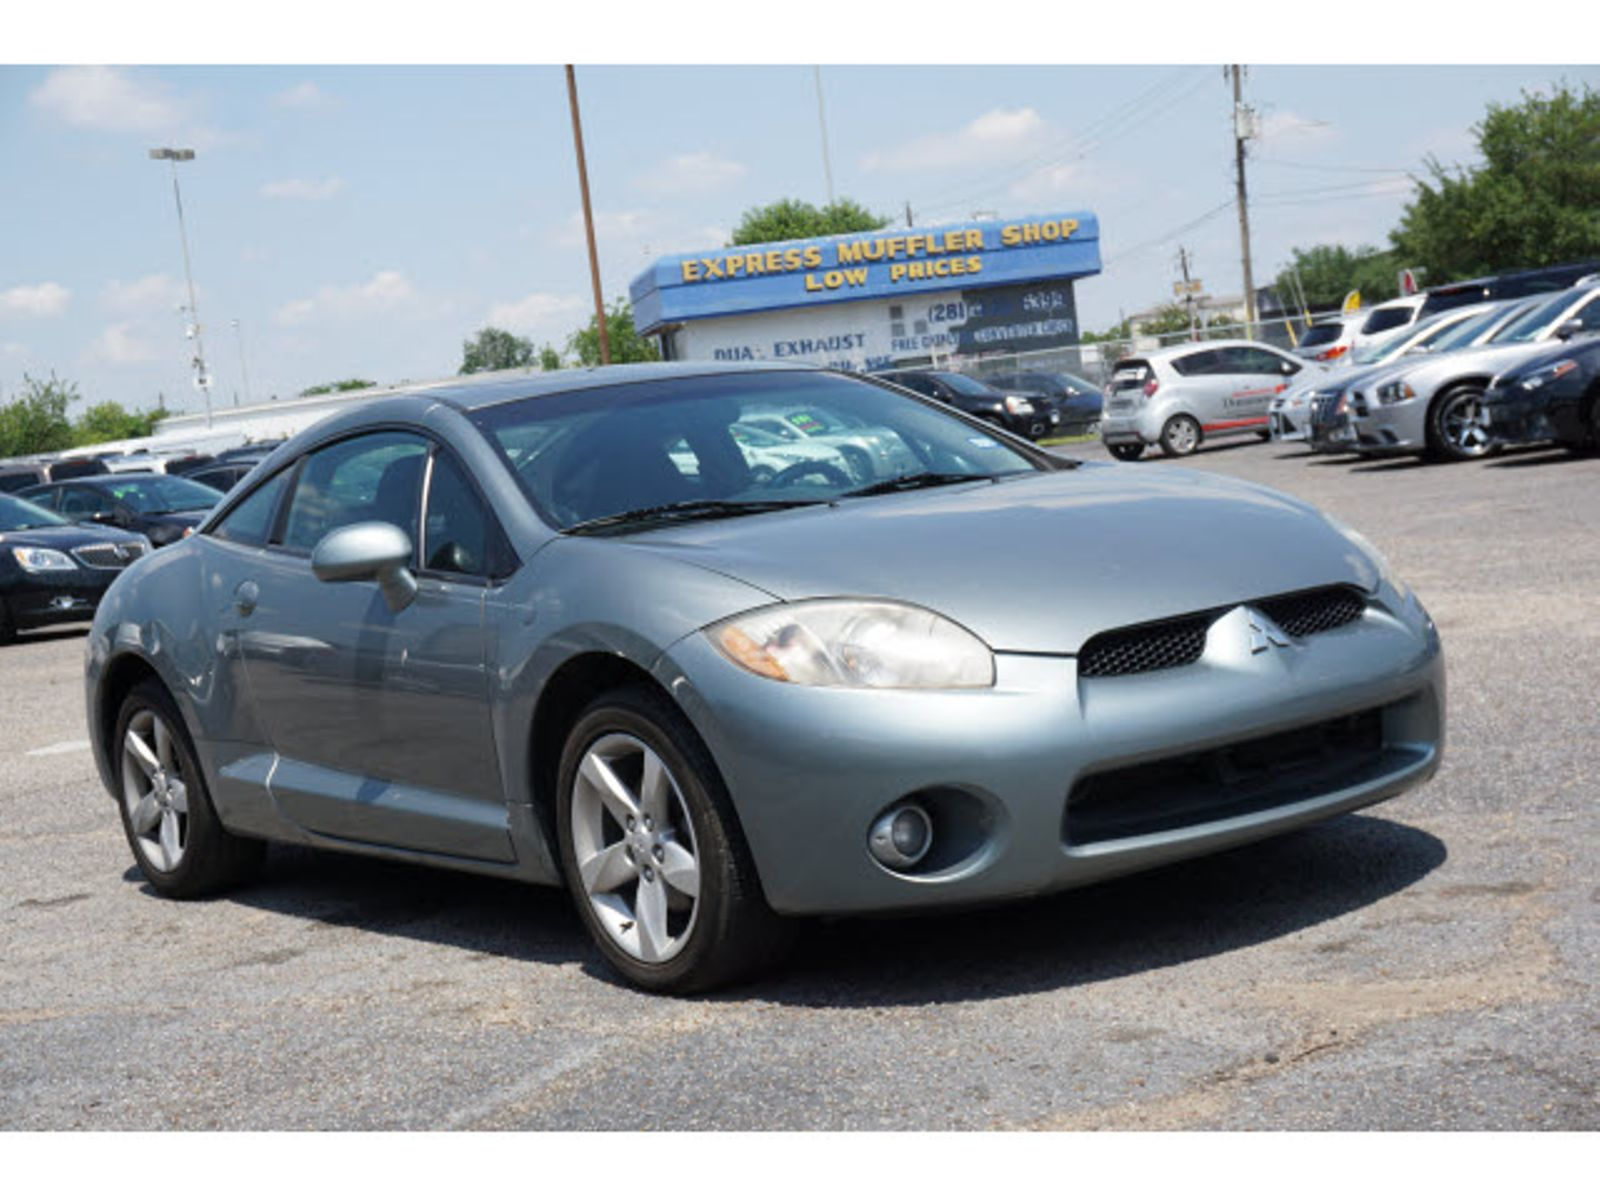 Marvelous ... 2007 Mitsubishi Eclipse GT City Texas Vista Cars And Trucks In Houston,  Texas ...